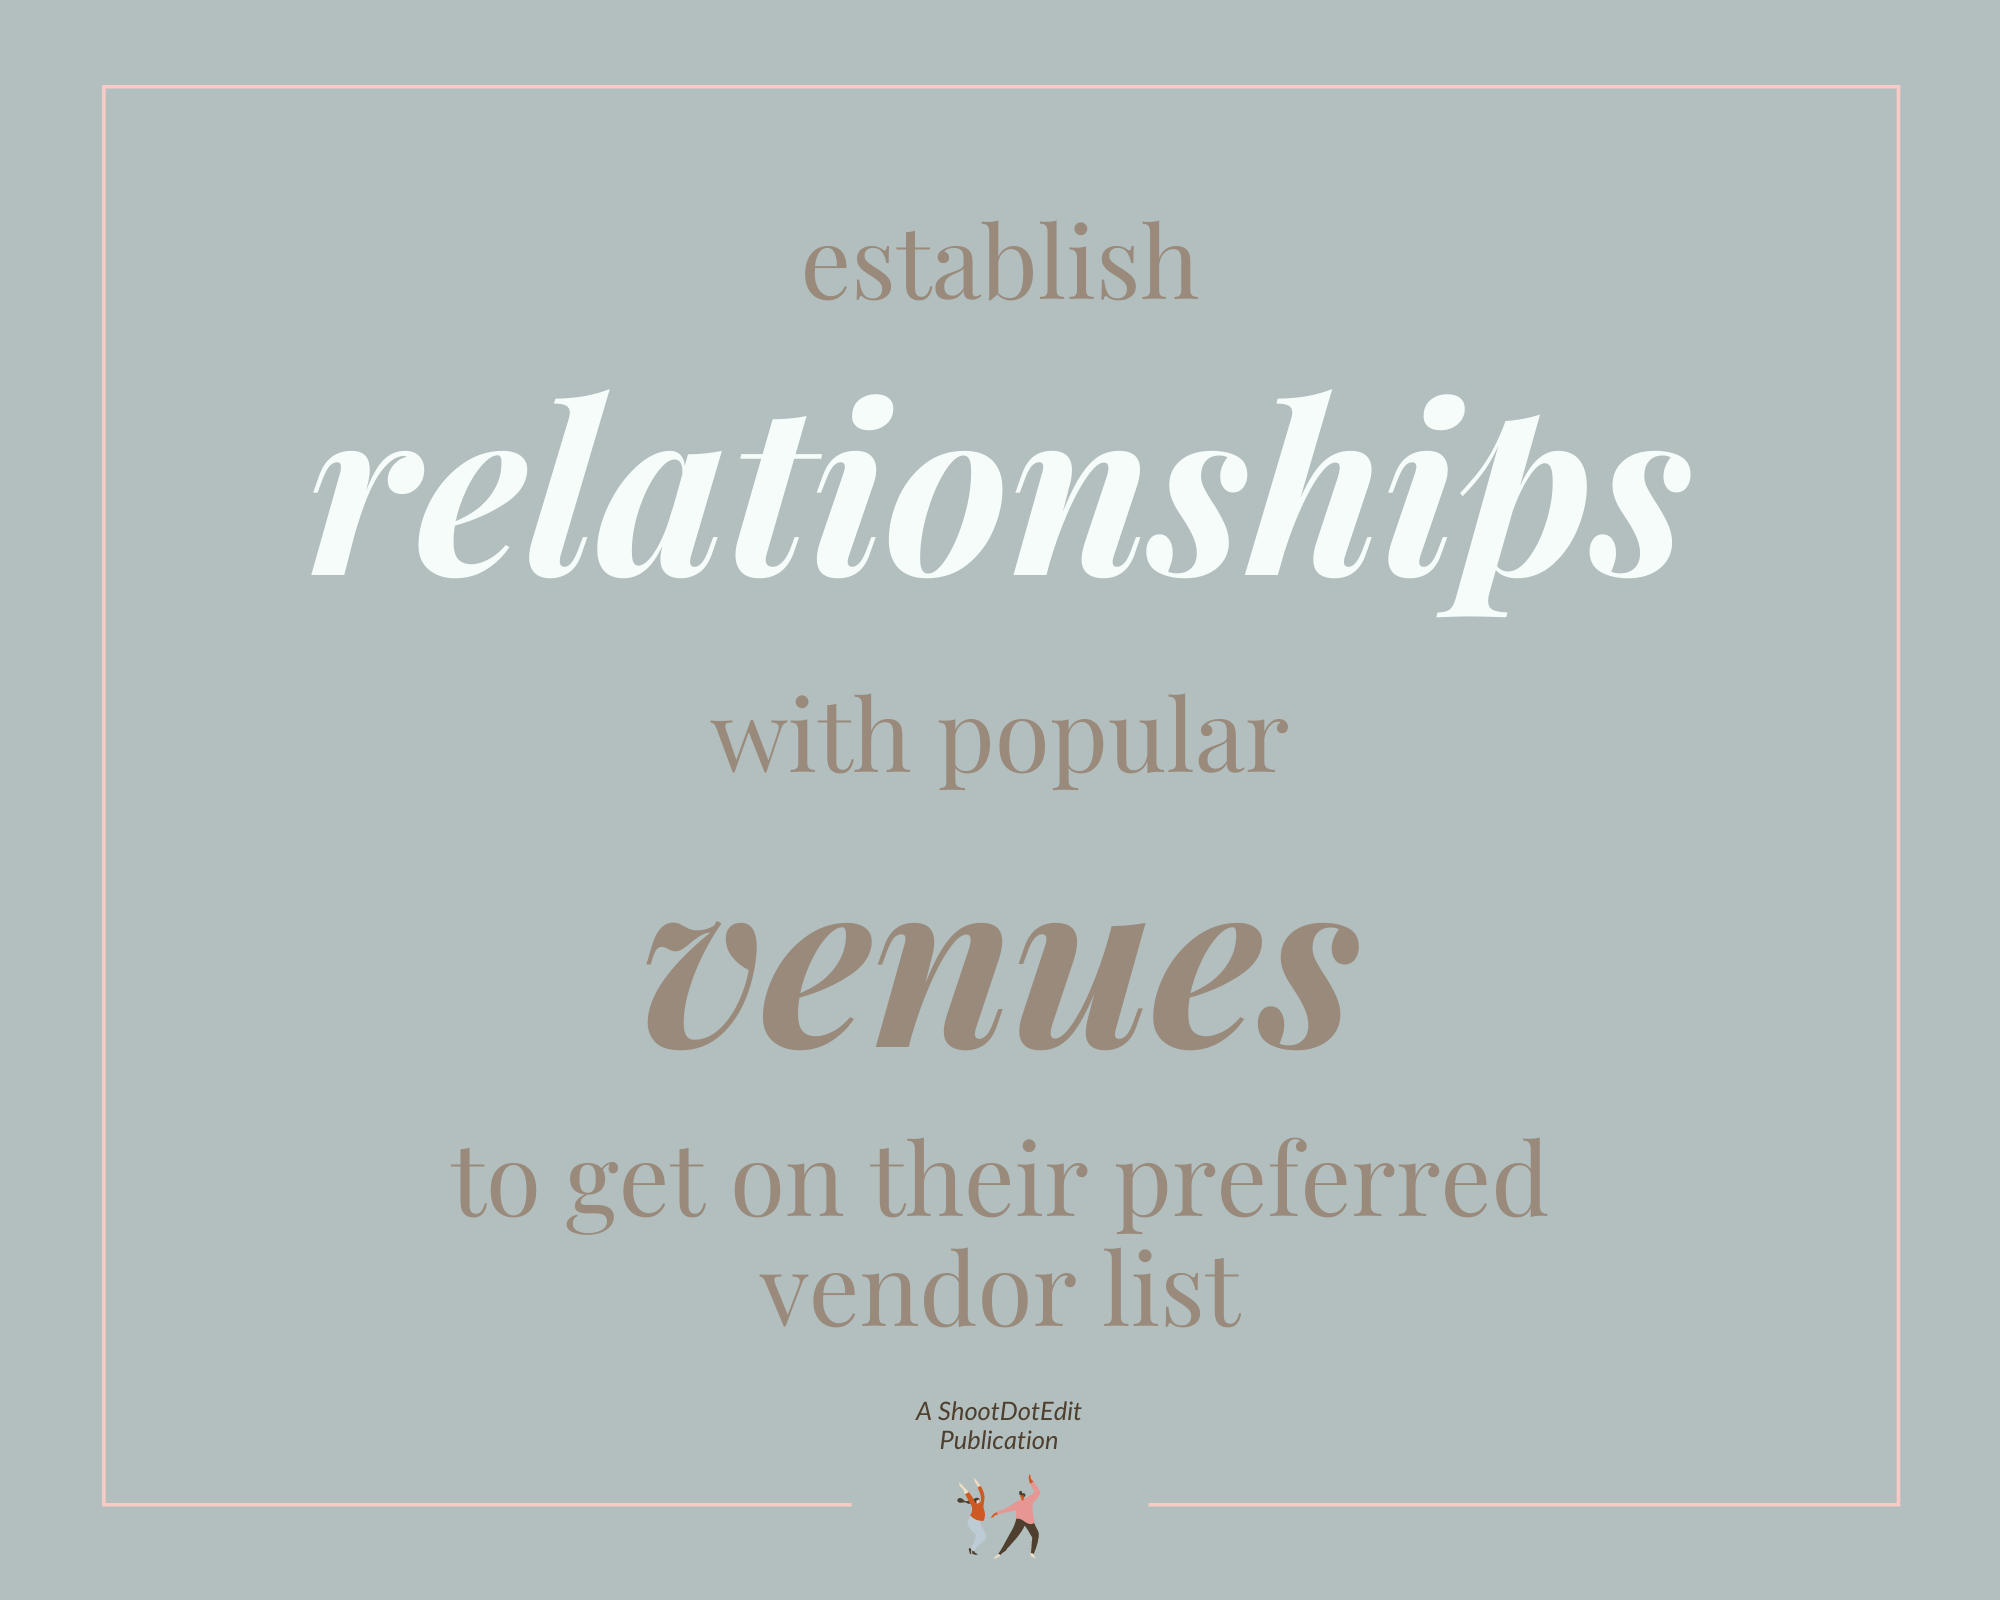 Infographic - establish relationships with popular venues to get on their preferred vendor list